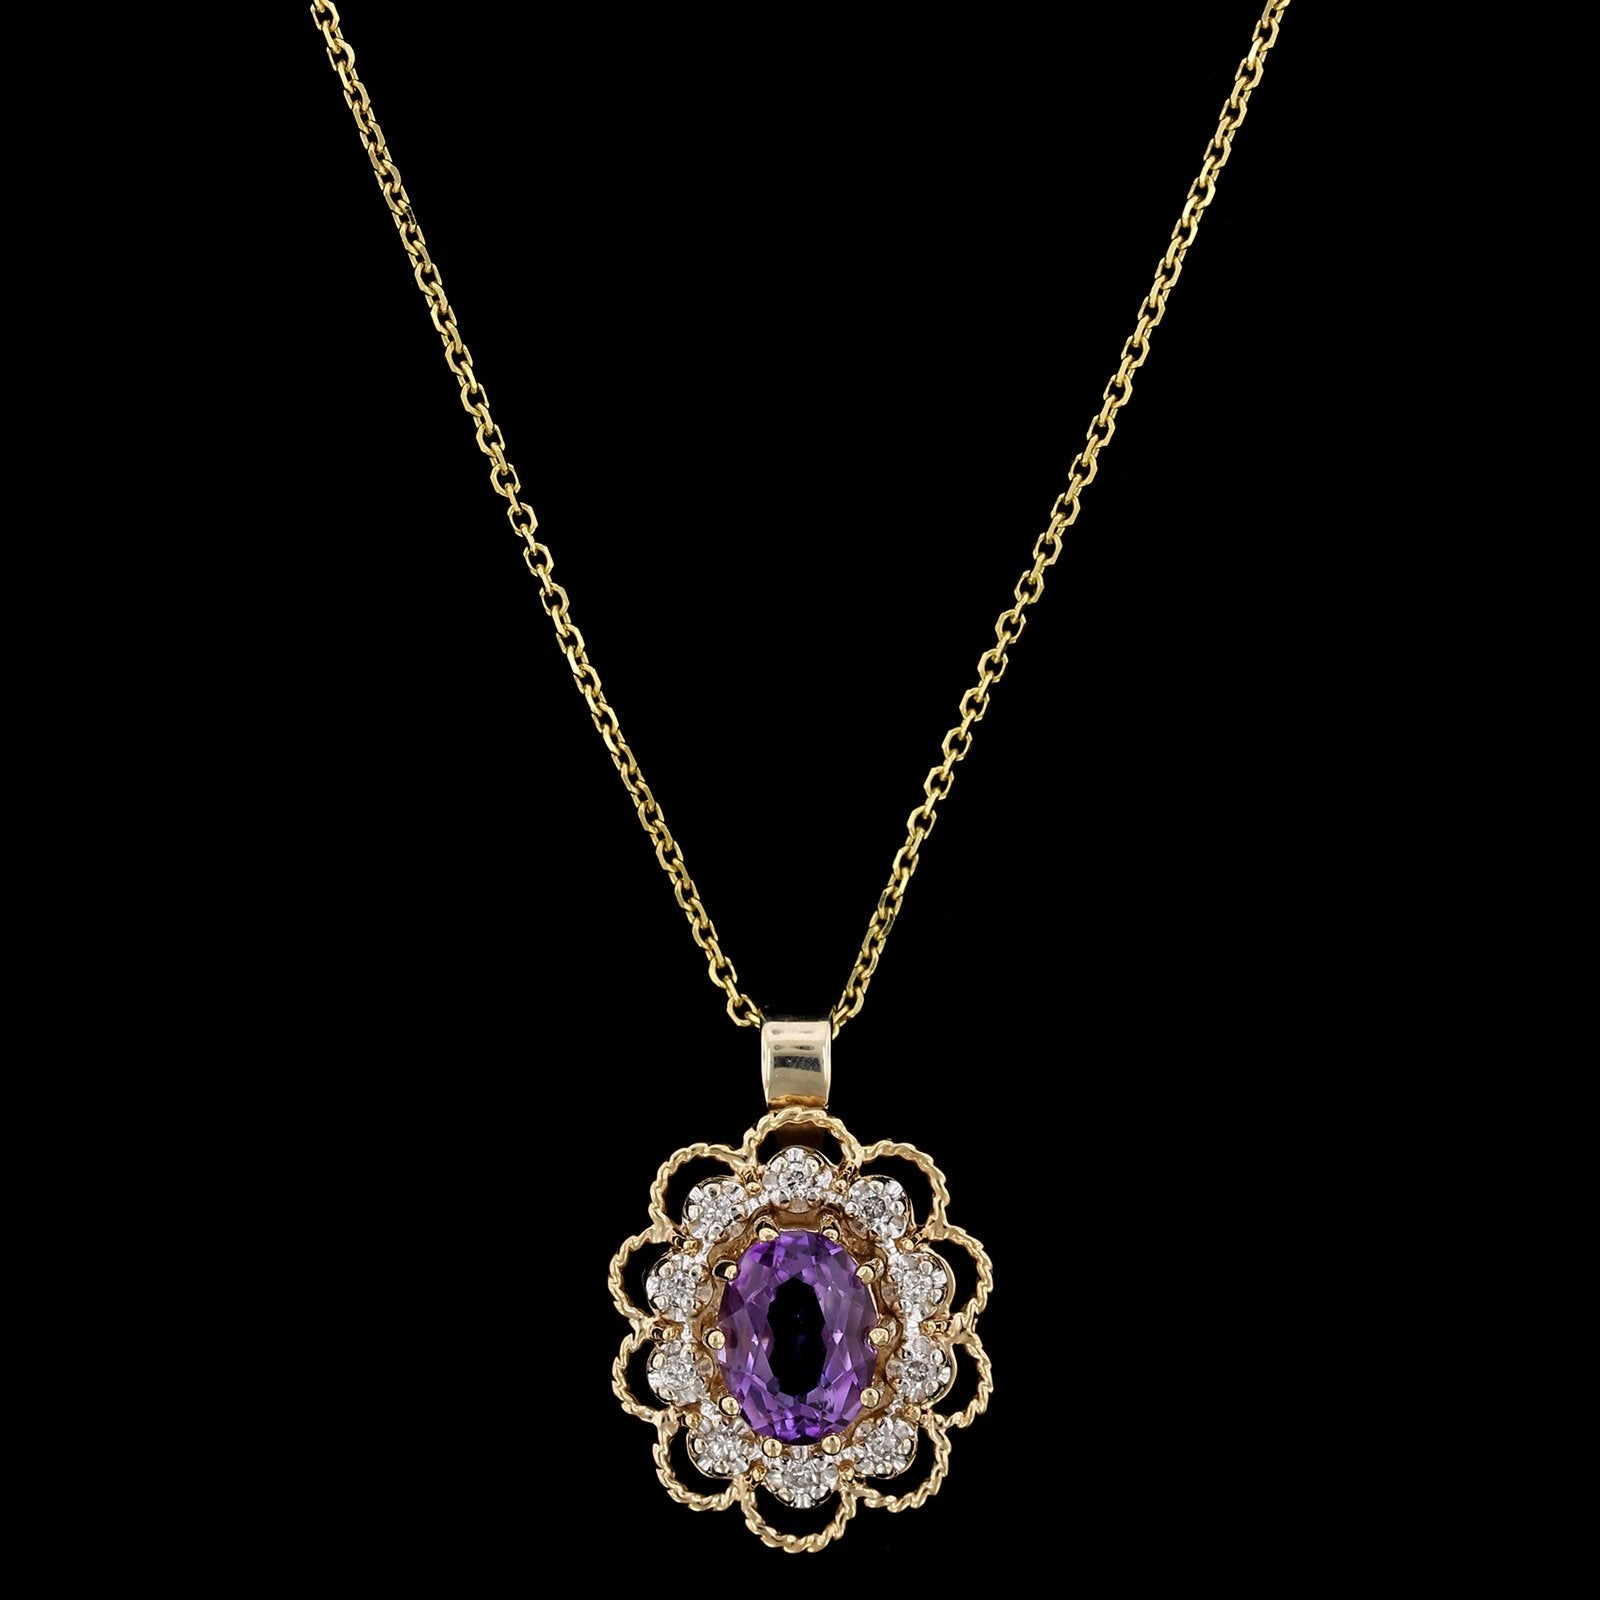 14K Yellow Gold Estate Amethyst and Diamond Pendant